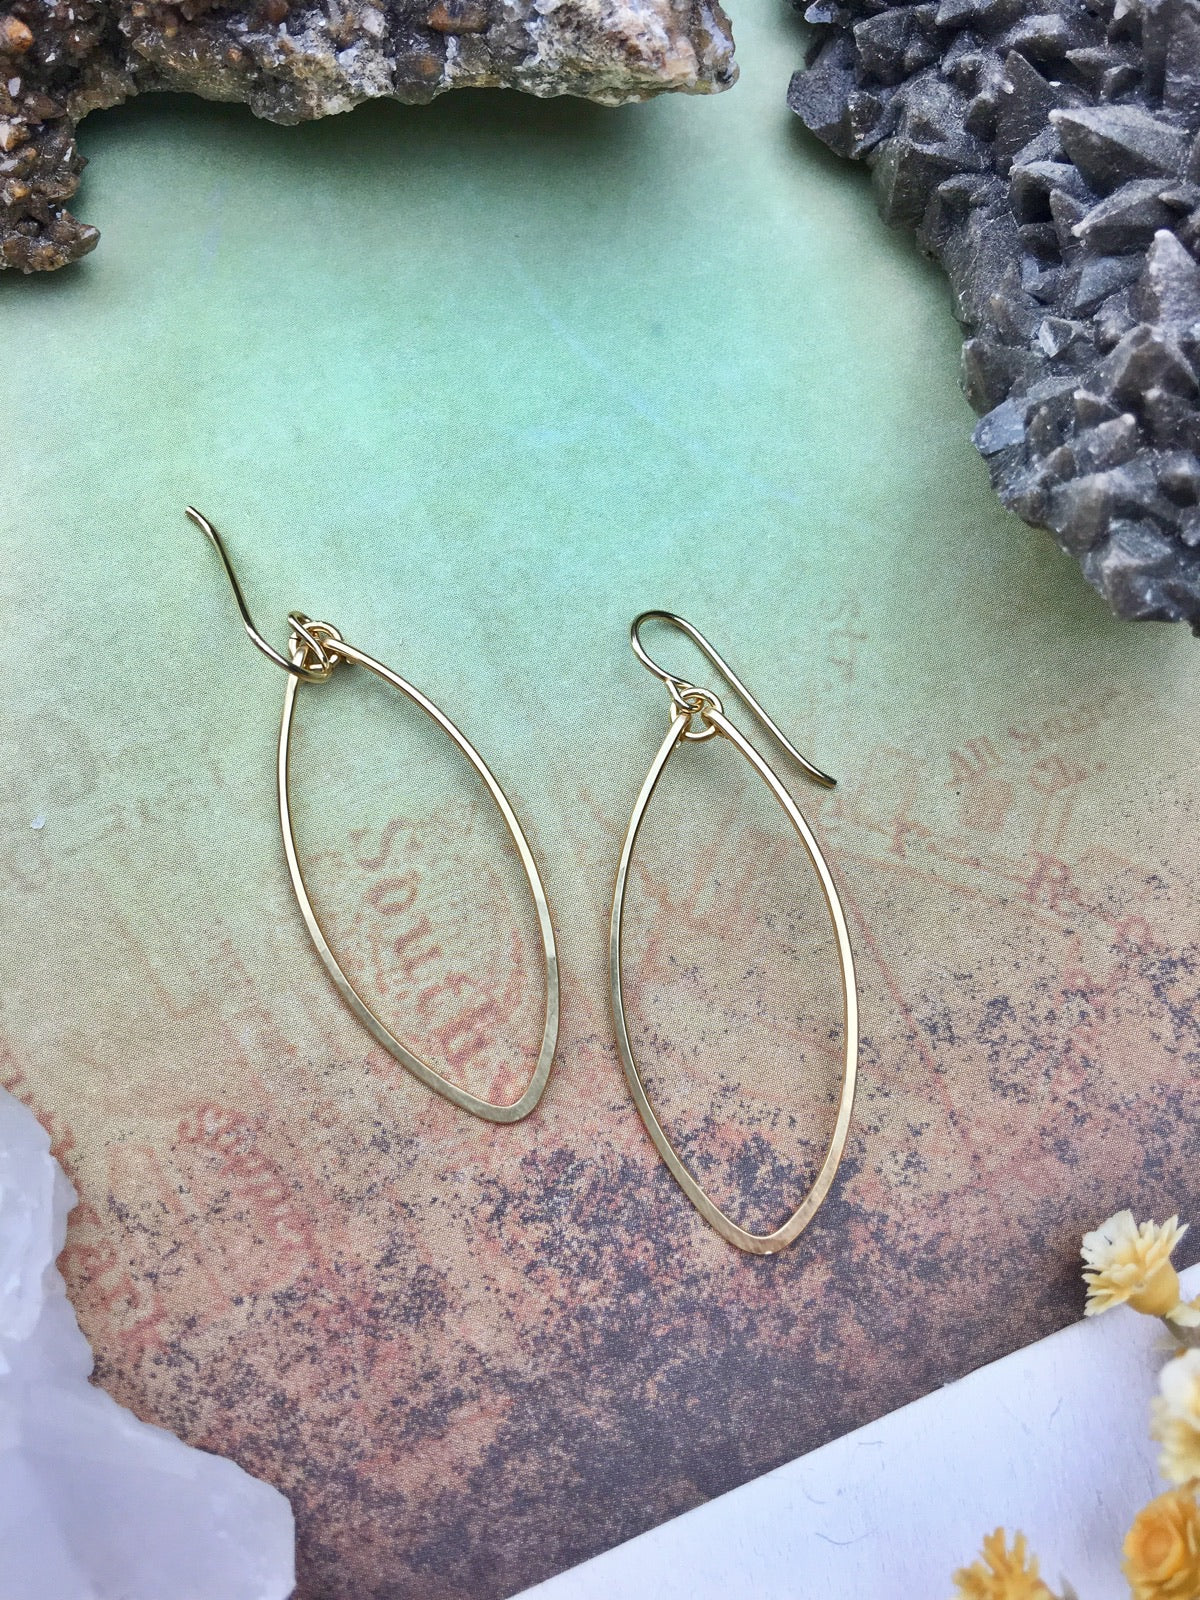 Sans-Stone - Soft Diamond Earrings - 14k Gold Fill